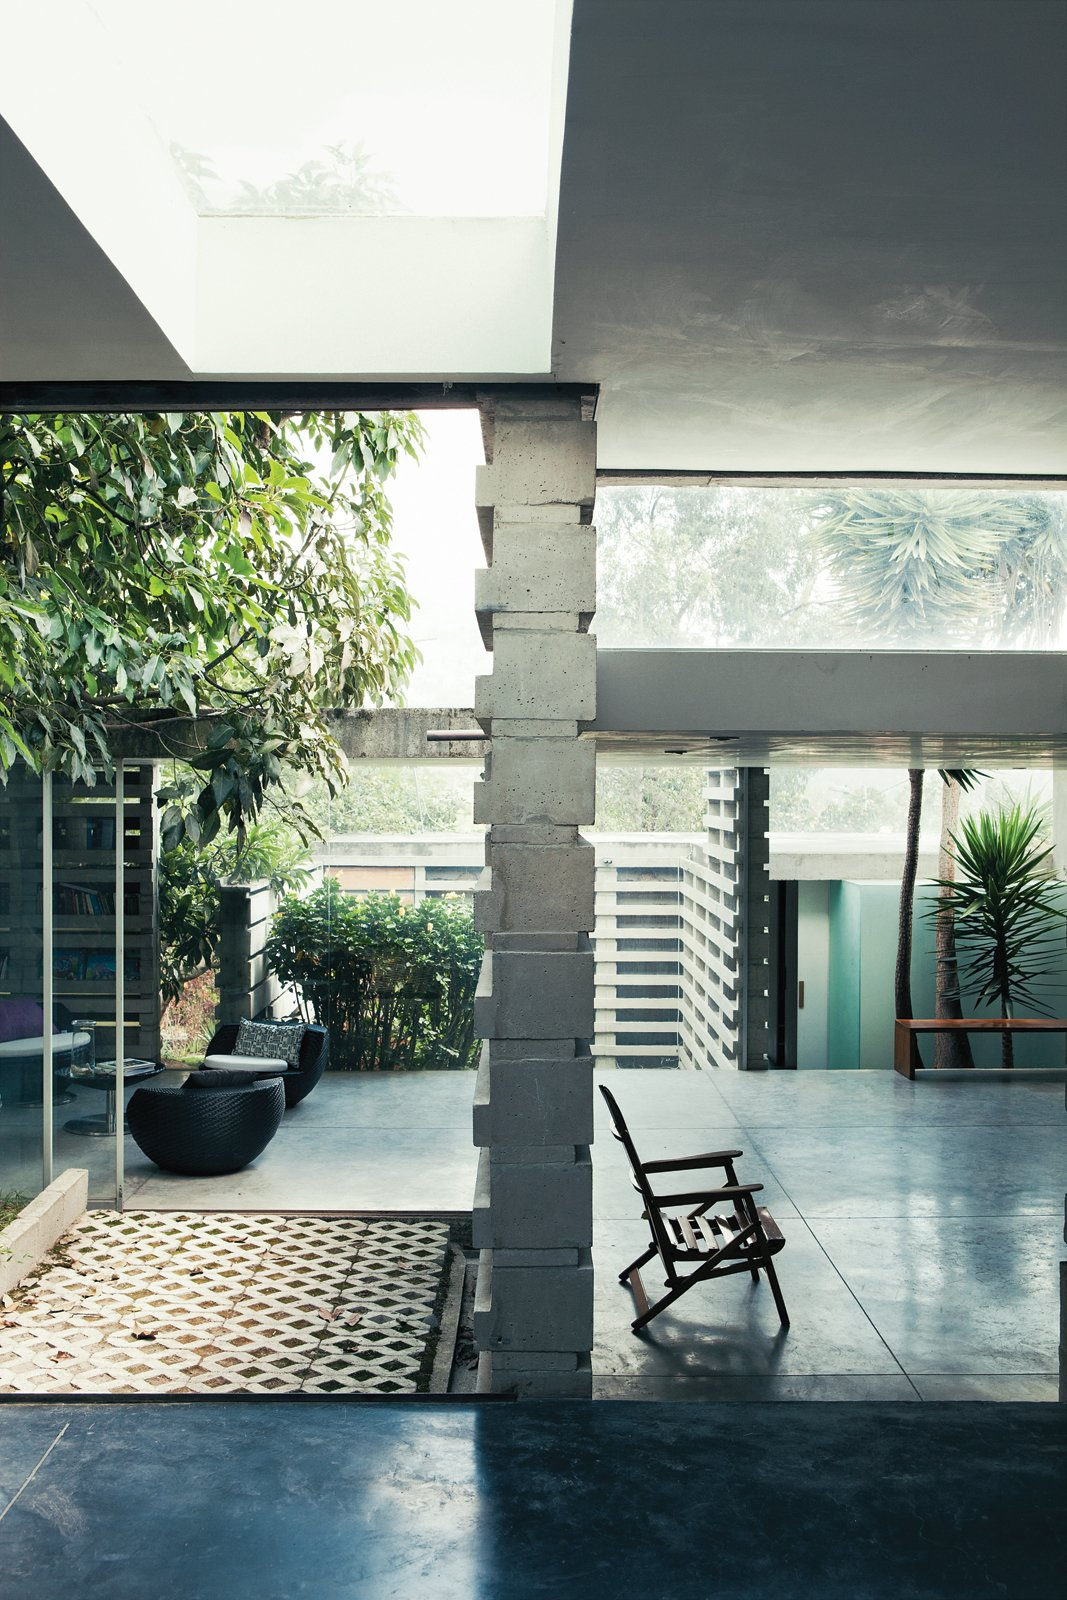 Once past the main threshold, the house opens up to the outside, literally and figuratively. Three courtyards built around existing trees flow seamlessly into a series of rooms with glazed walls and sliding glass doors. Tagged: Living Room and Chair.  Latin America's Best Modern Homes by Kelsey Keith from An Innovative Modular Building System in Ecuador